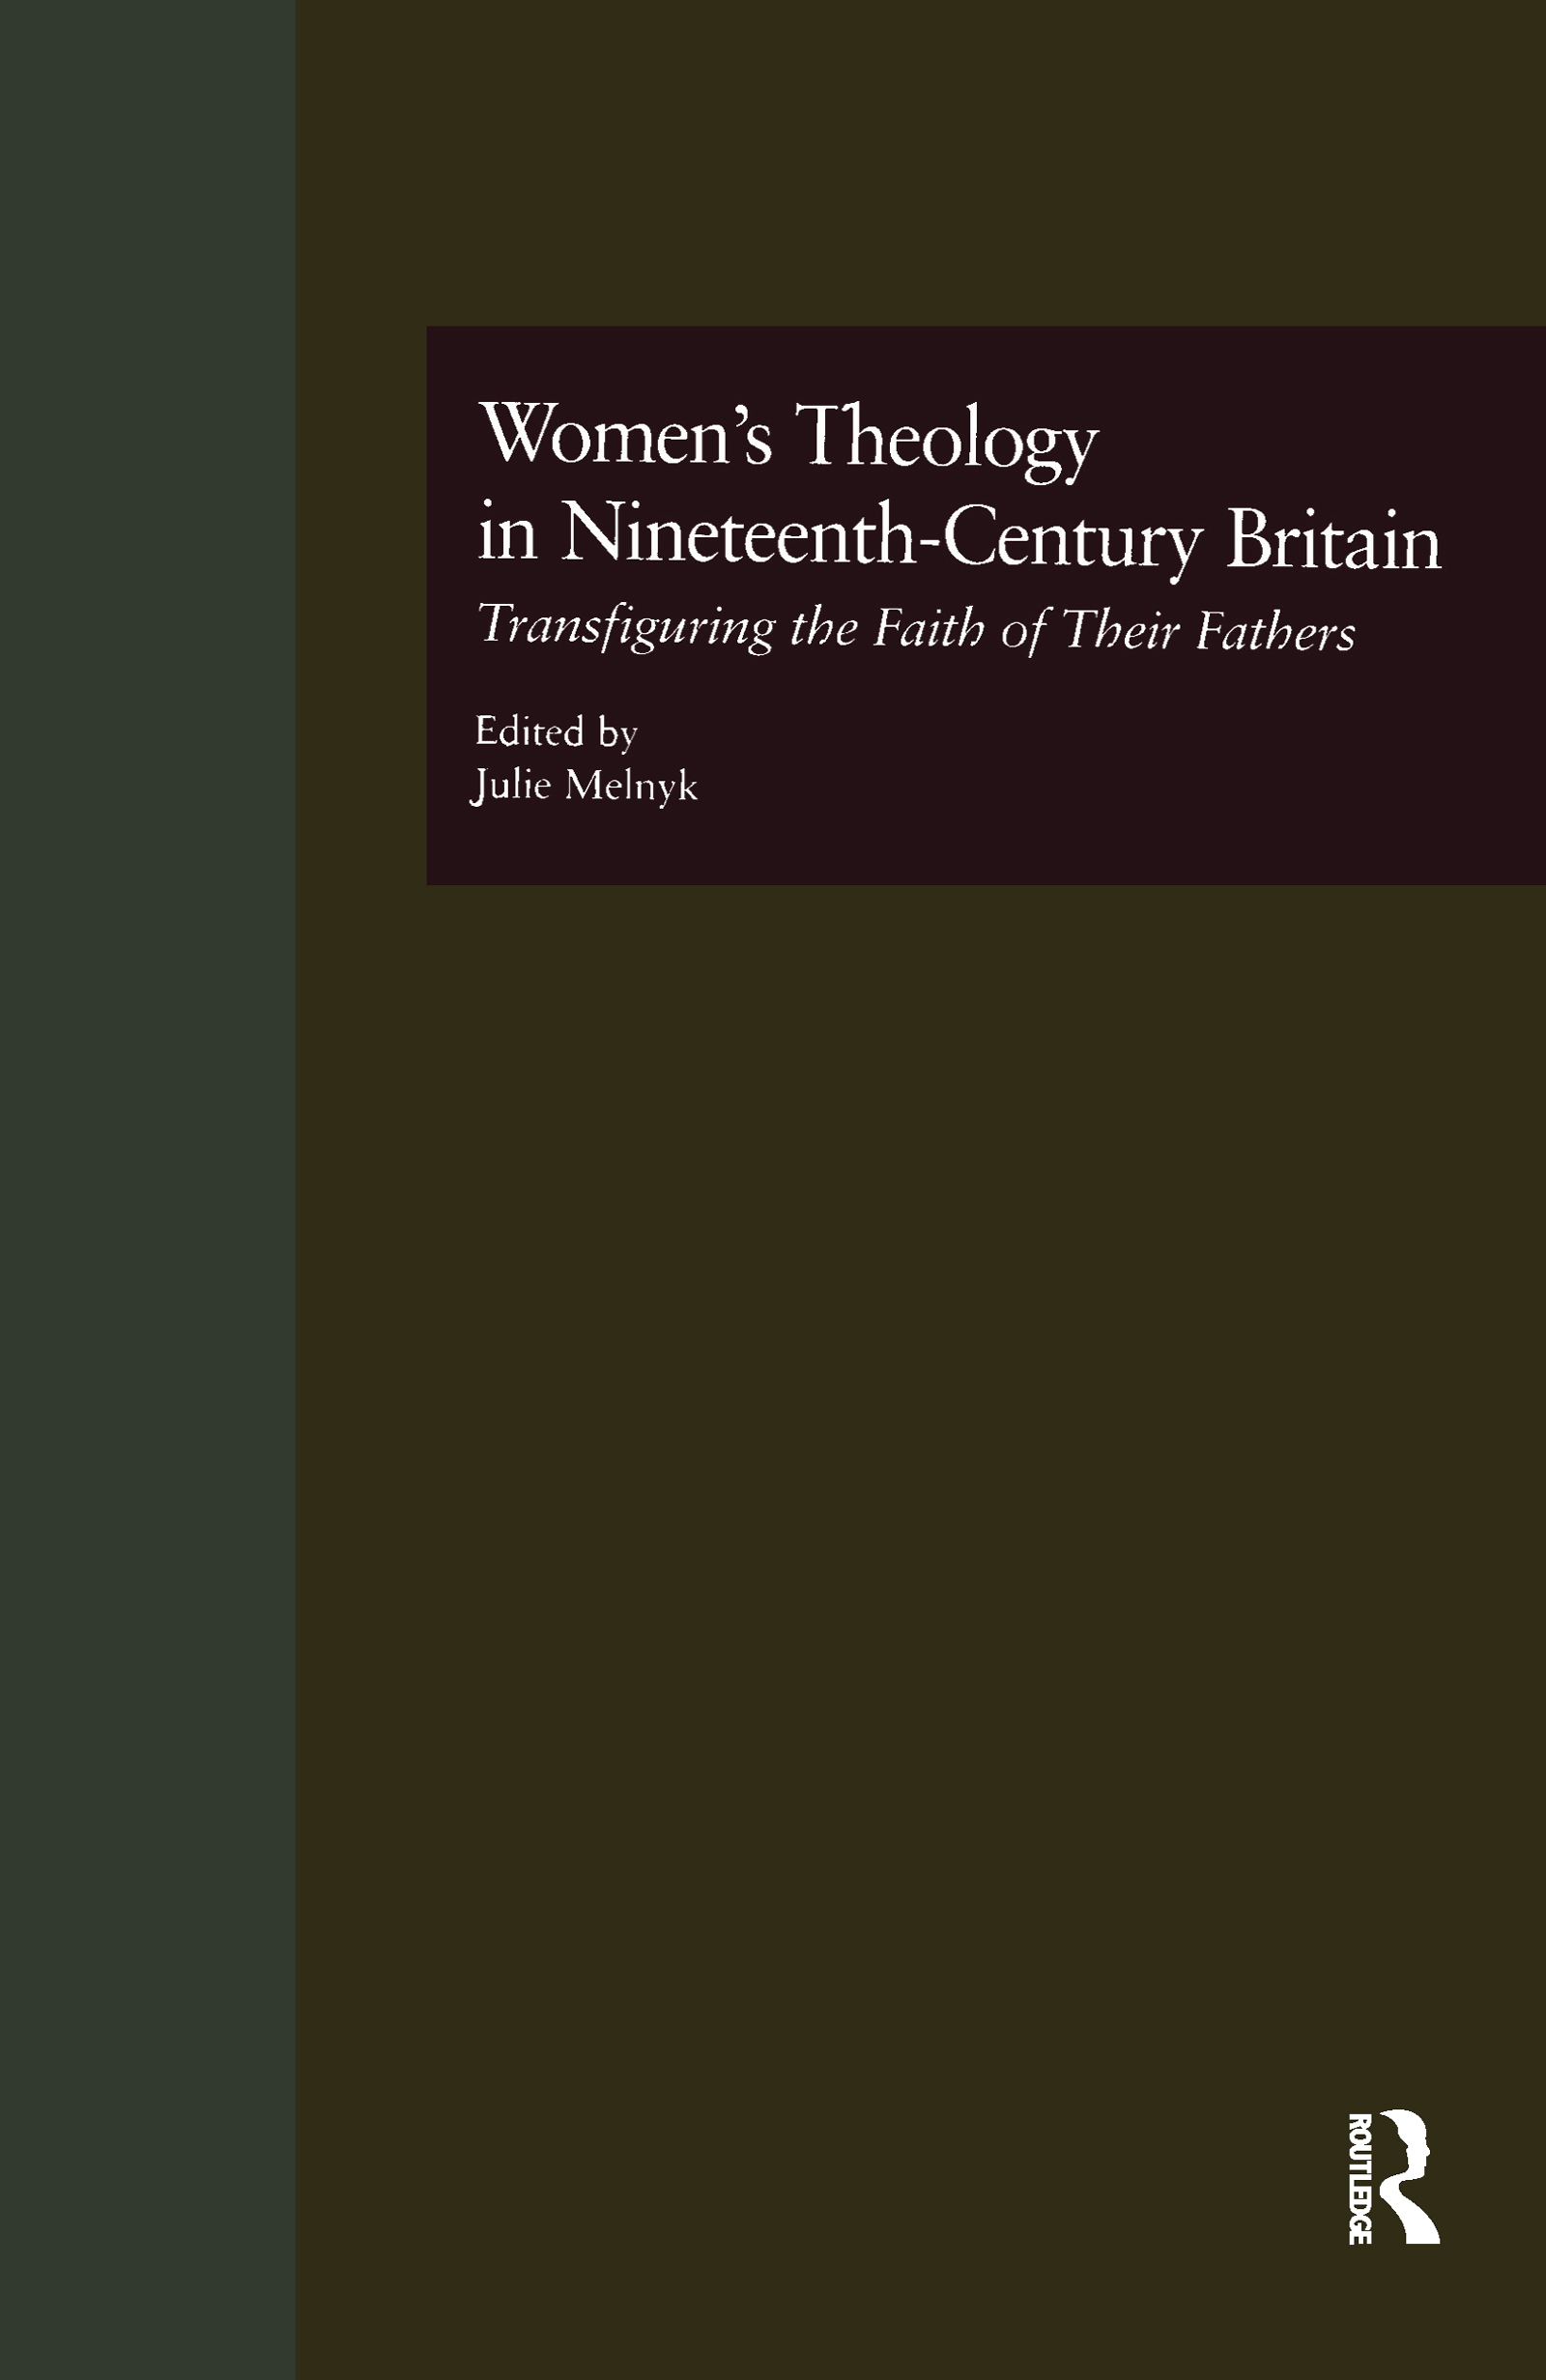 Women's Theology in Nineteenth-Century Britain: Transfiguring the Faith of Their Fathers book cover